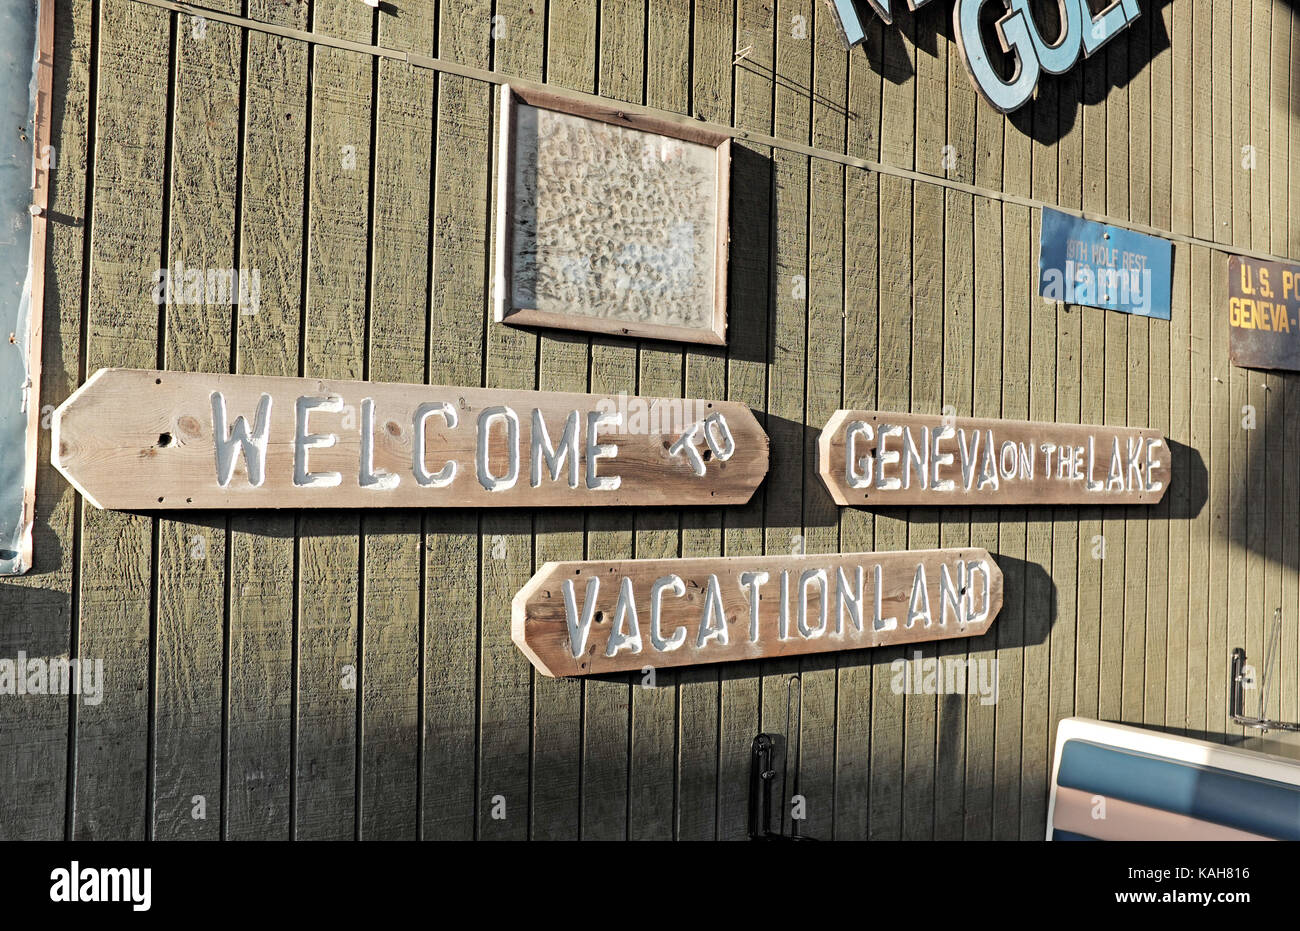 'Welcome to Geneva on the Lake Vacationland' is the theme of this outdoor bar on the Geneva-On-The-Lake - Stock Image